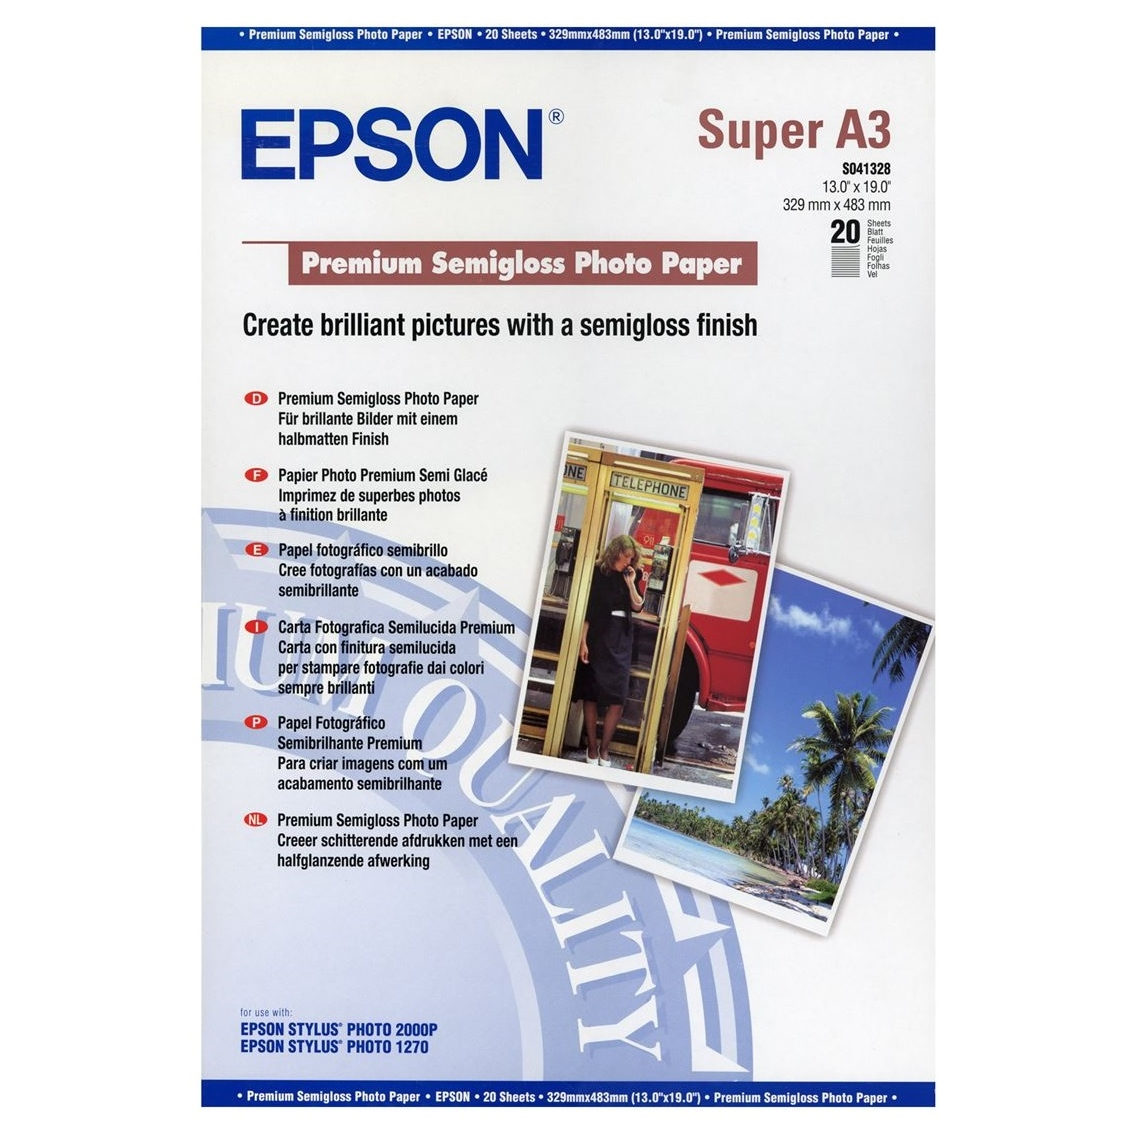 Original Epson S041328 251gsm A3+ Photo Paper - 20 Sheets (C13S041328)